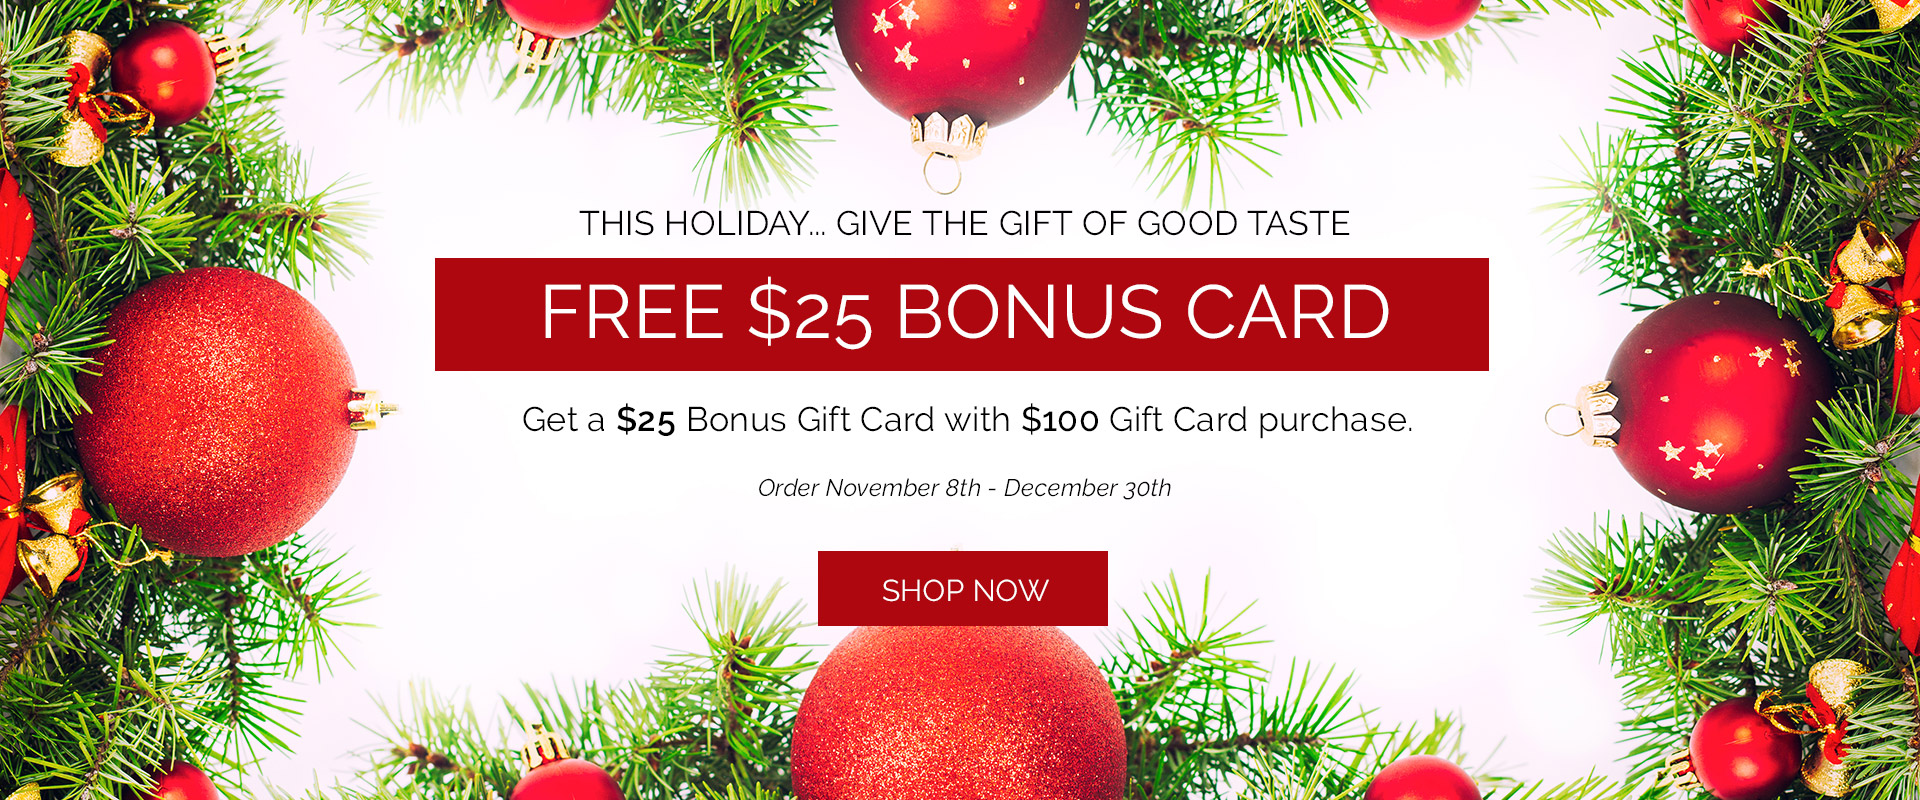 This Holiday, Give the Gift of Good Taste.  FREE $25 Bonus Card with $100 Gift Card Purchase.  We also have cookbooks and more.  Order Nov. 23rd through Dec 30th.